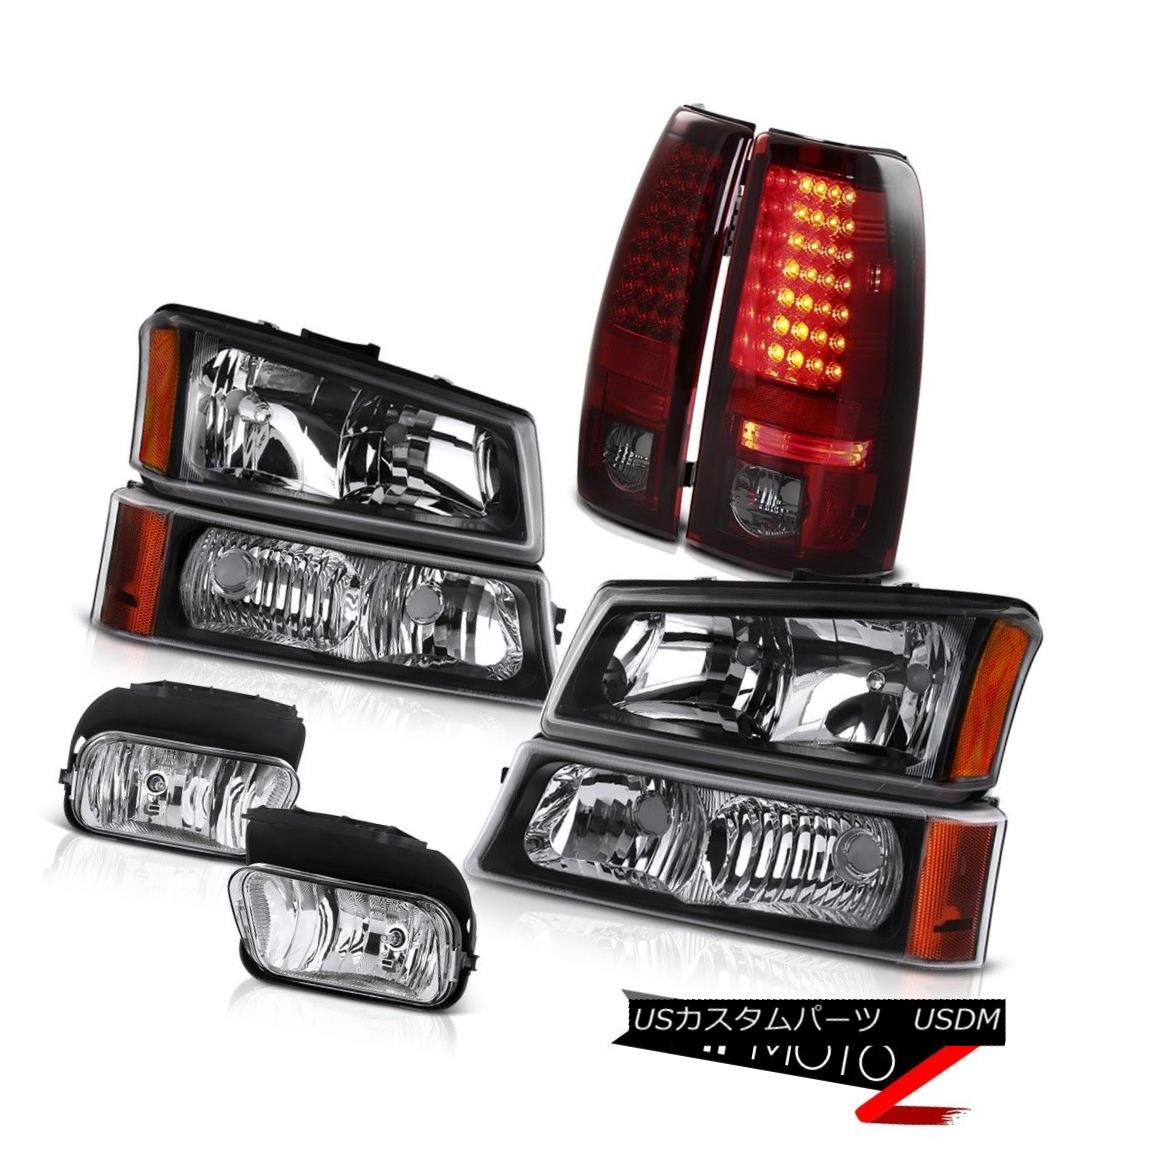 ヘッドライト 03-06 Chevy Silverado Black Signal Parking Lamp BRIGHTEST LED Tail Light Foglamp 03-06 Chevy SilveradoブラックシグナルランプパーライトBRIGHTEST LEDテールライトFoglamp